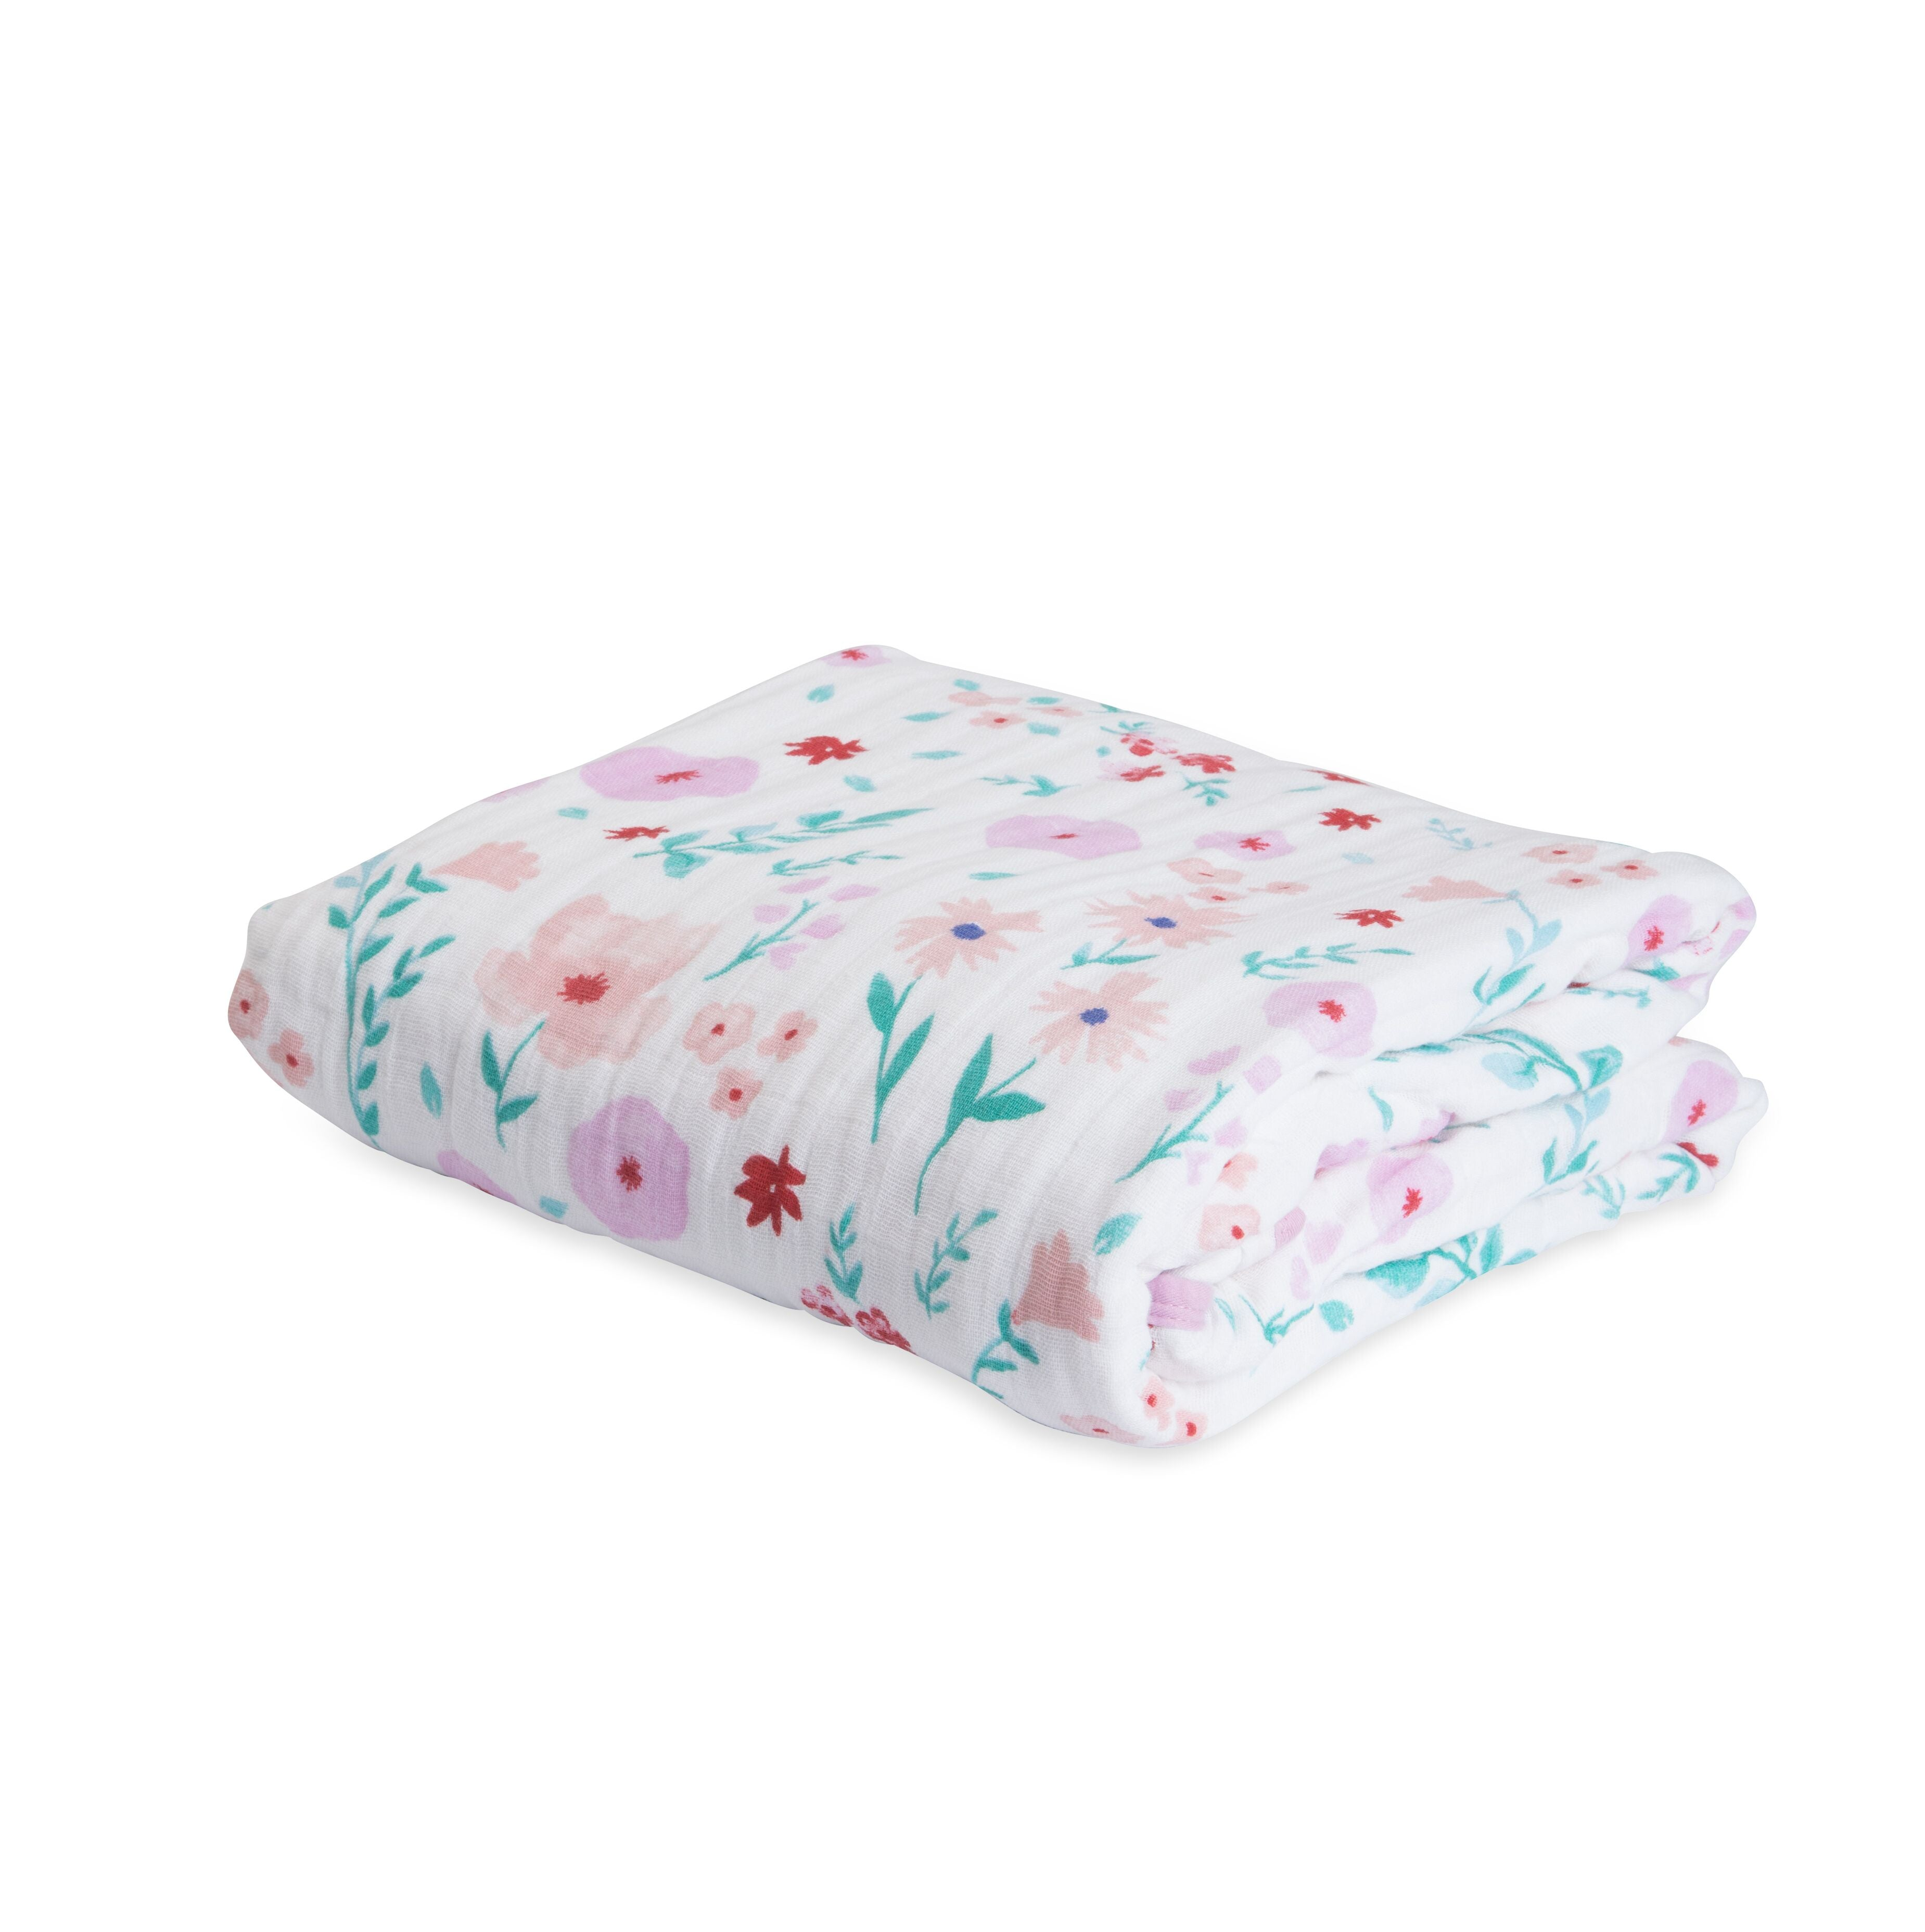 Little Unicorn Cotton Muslin Quilt - Morning Glory